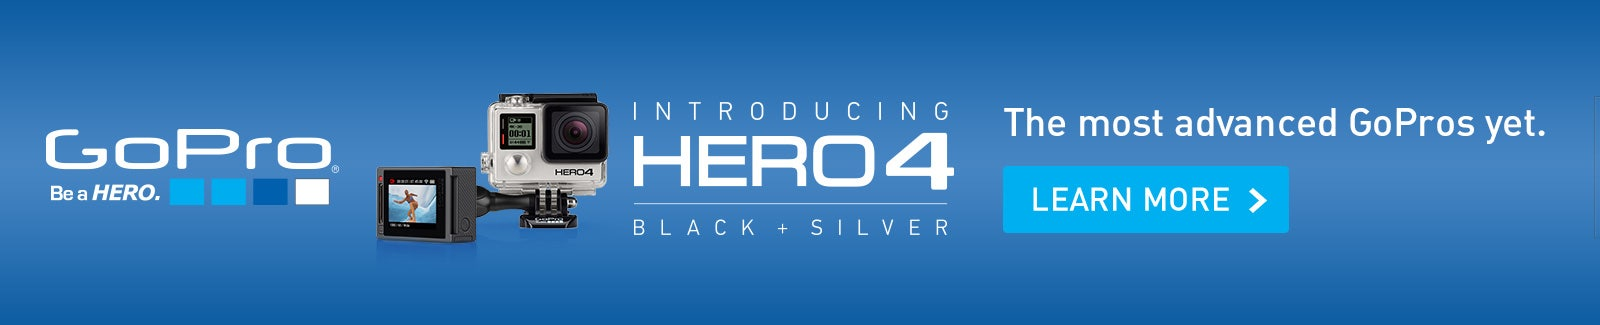 GoPro HERO4 Black and Silver Launch